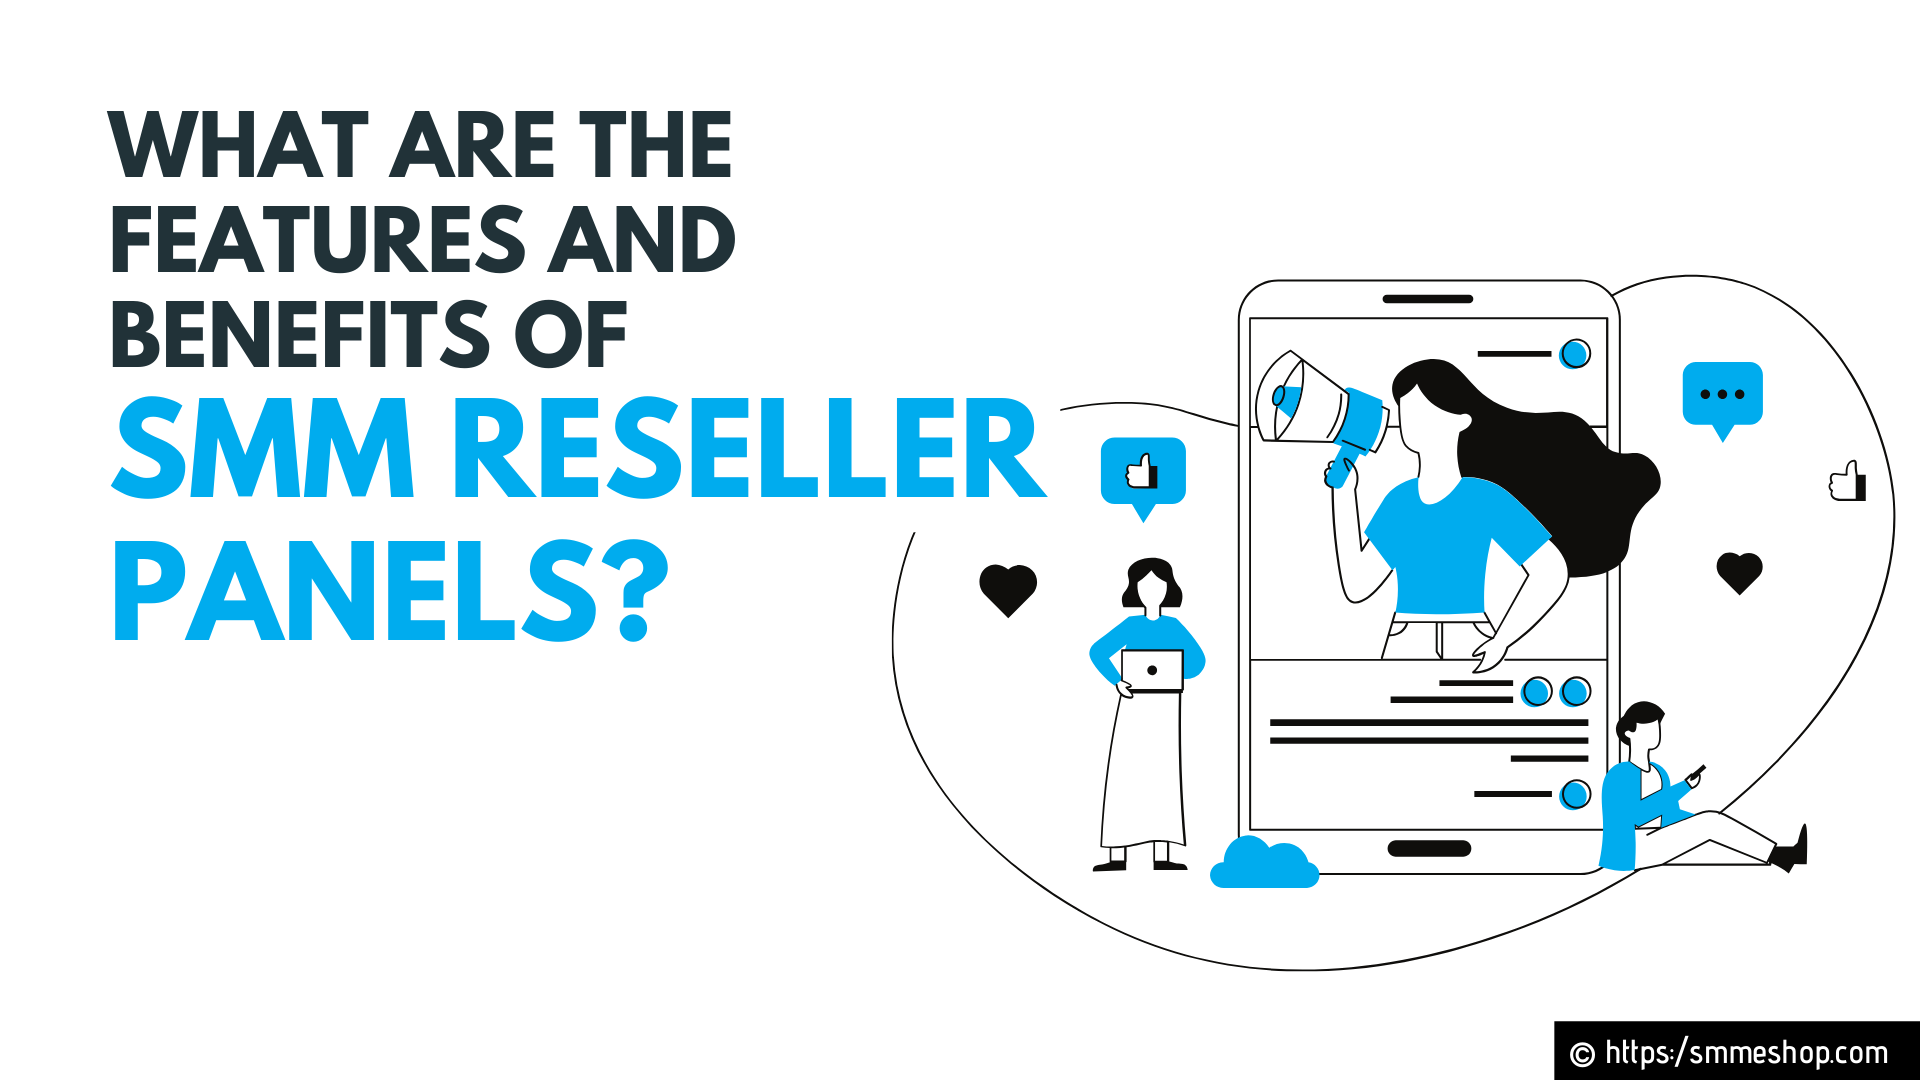 What are the Features and Benefits of SMM Reseller Panels?